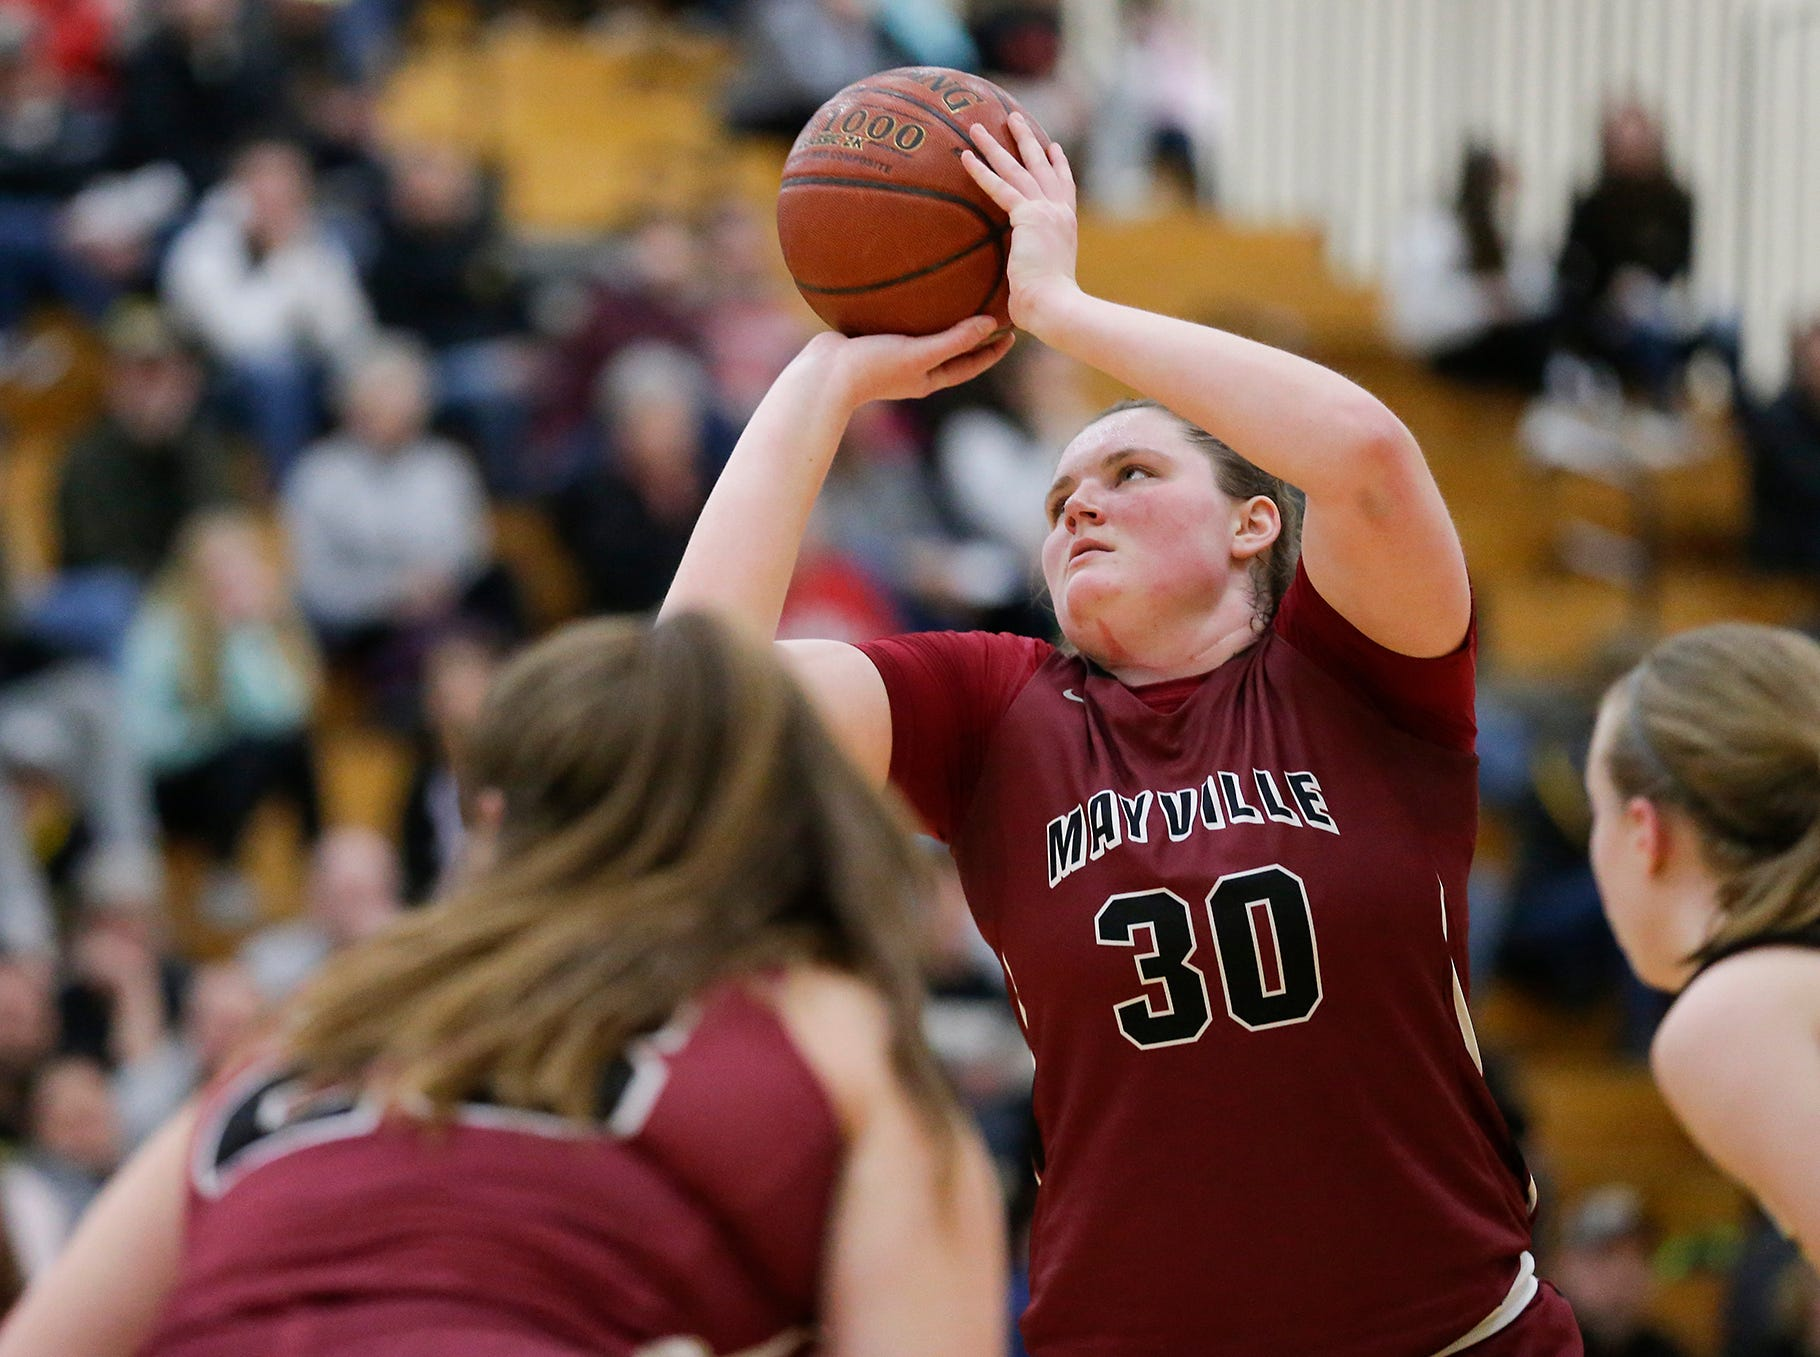 Mayville High School girls basketball's Sydney Schultz (30) attempts a free throw against Waupun High School Saturday, February 23, 2019 during their WIAA Division 4 sectional quarterfinal game in Waupun. Waupun won the game 62-45. Doug Raflik/USA TODAY NETWORK-Wisconsin